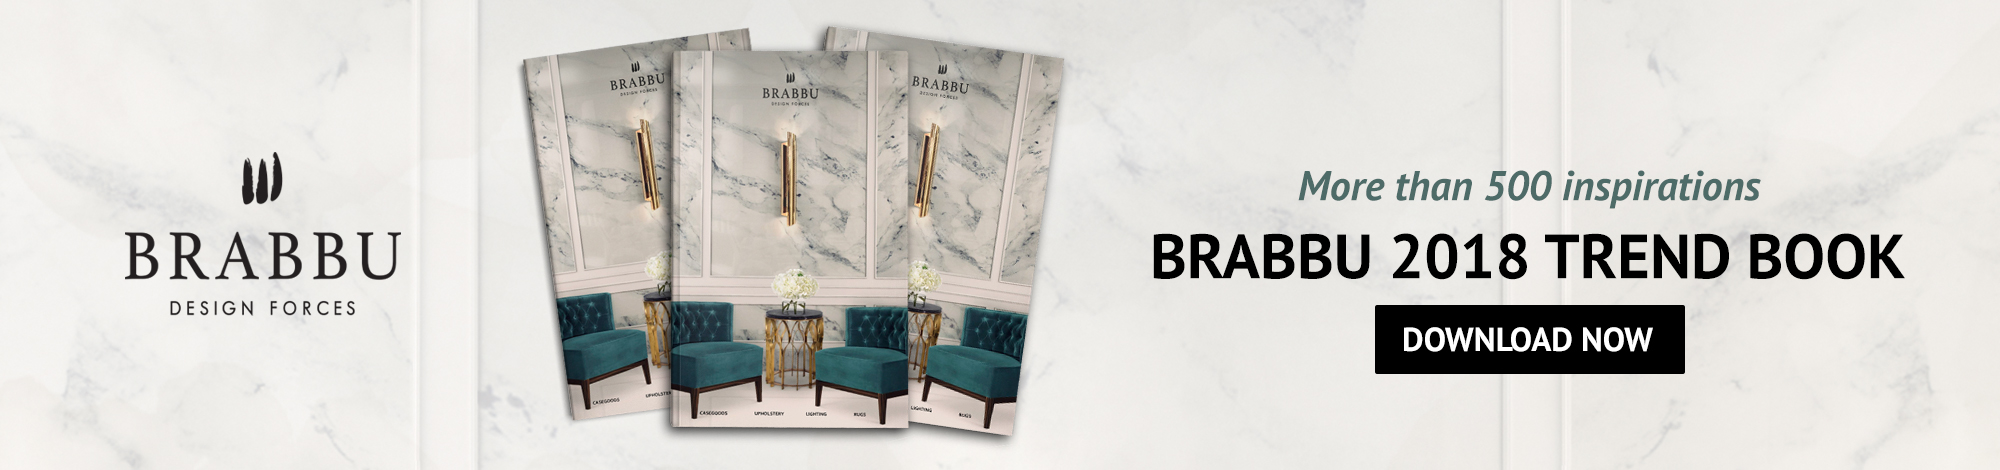 BRABBU Catalogue imm Cologne 2019 imm Cologne 2019: Start the Year With These Inspirations  1C5EB82328DCFD5BD10428DB124BD945082C079483CACCDD2D pimgpsh fullsize distr